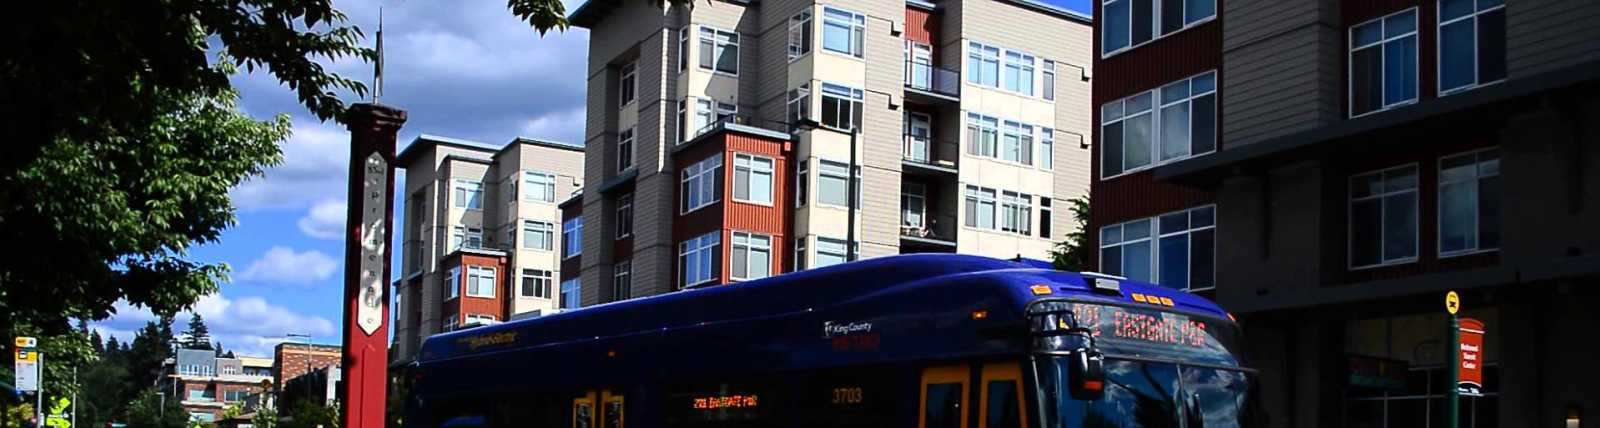 King County Metro Transit